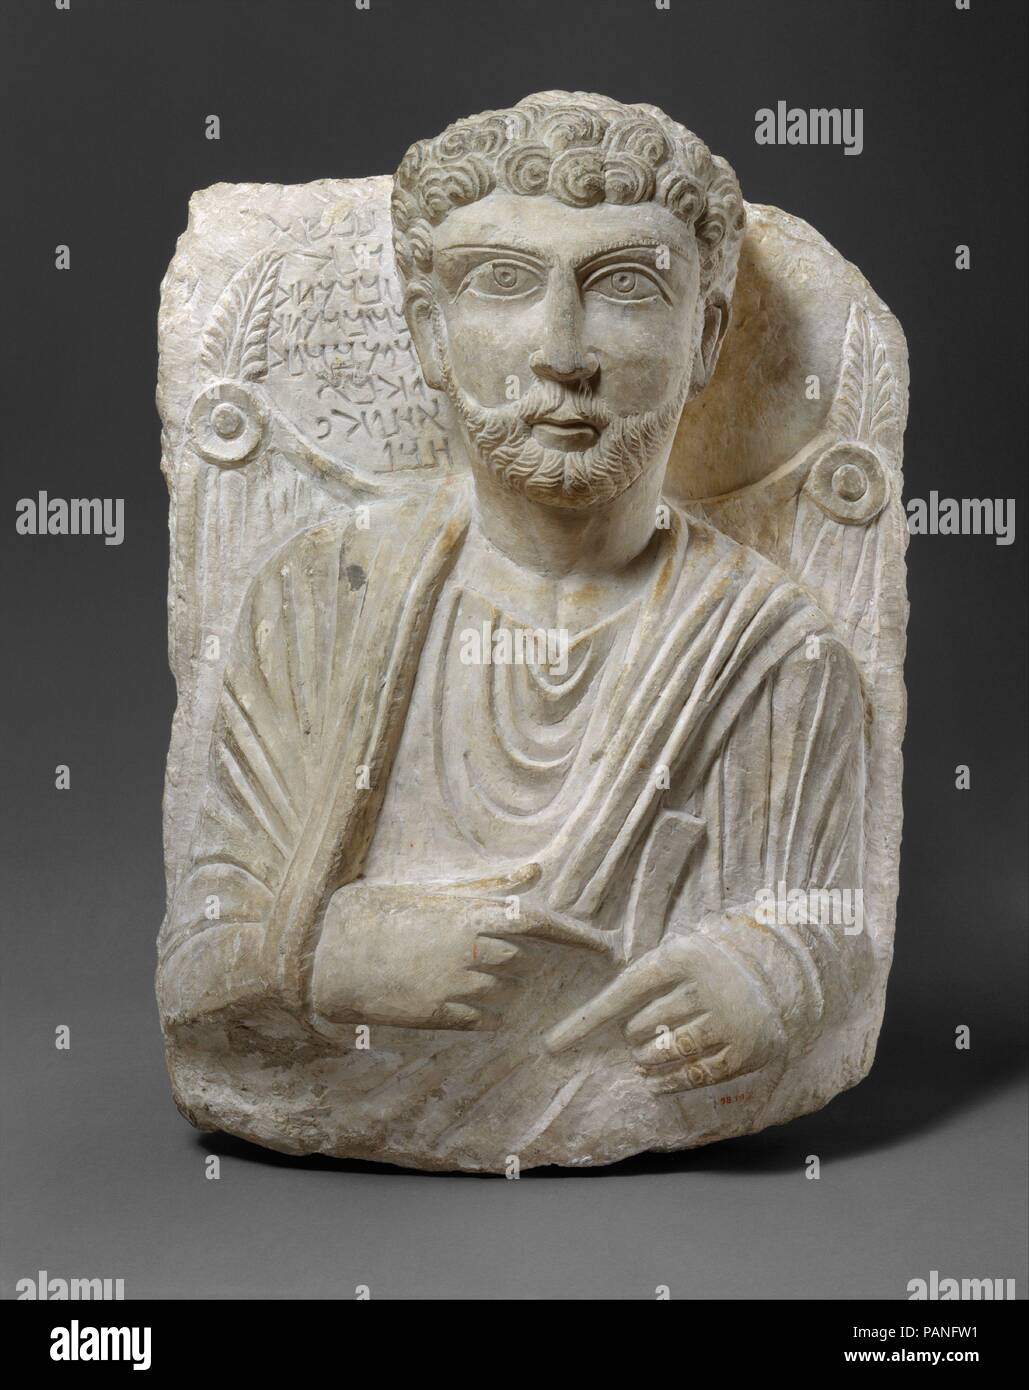 Funerary relief. Dimensions: 20 5/8 × 15 1/8 × 7 5/8 in., 98 lb. (52.4 × 38.4 cm). Date: ca. 150-200.  Inscription:  1-2 This image   3 (is of) Zabda'ateh,   4 son of Zabda'ateh,   5 which made for him   6 Wahba,   7 his brother.   8 Alas!  Transliteration:  1 nps?  2 dnh  3 zbd?th  4 br zbd?th  5 dy ?bd lh  6 whb?  7 ?hwhy  8 hbl  This relief is a type of funerary monument characteristic of the prosperous caravan city of Palmyra during the first three centuries A.D. Reliefs with a representation of the deceased and a short identifying inscription were used to seal burial niches in elaborately - Stock Image